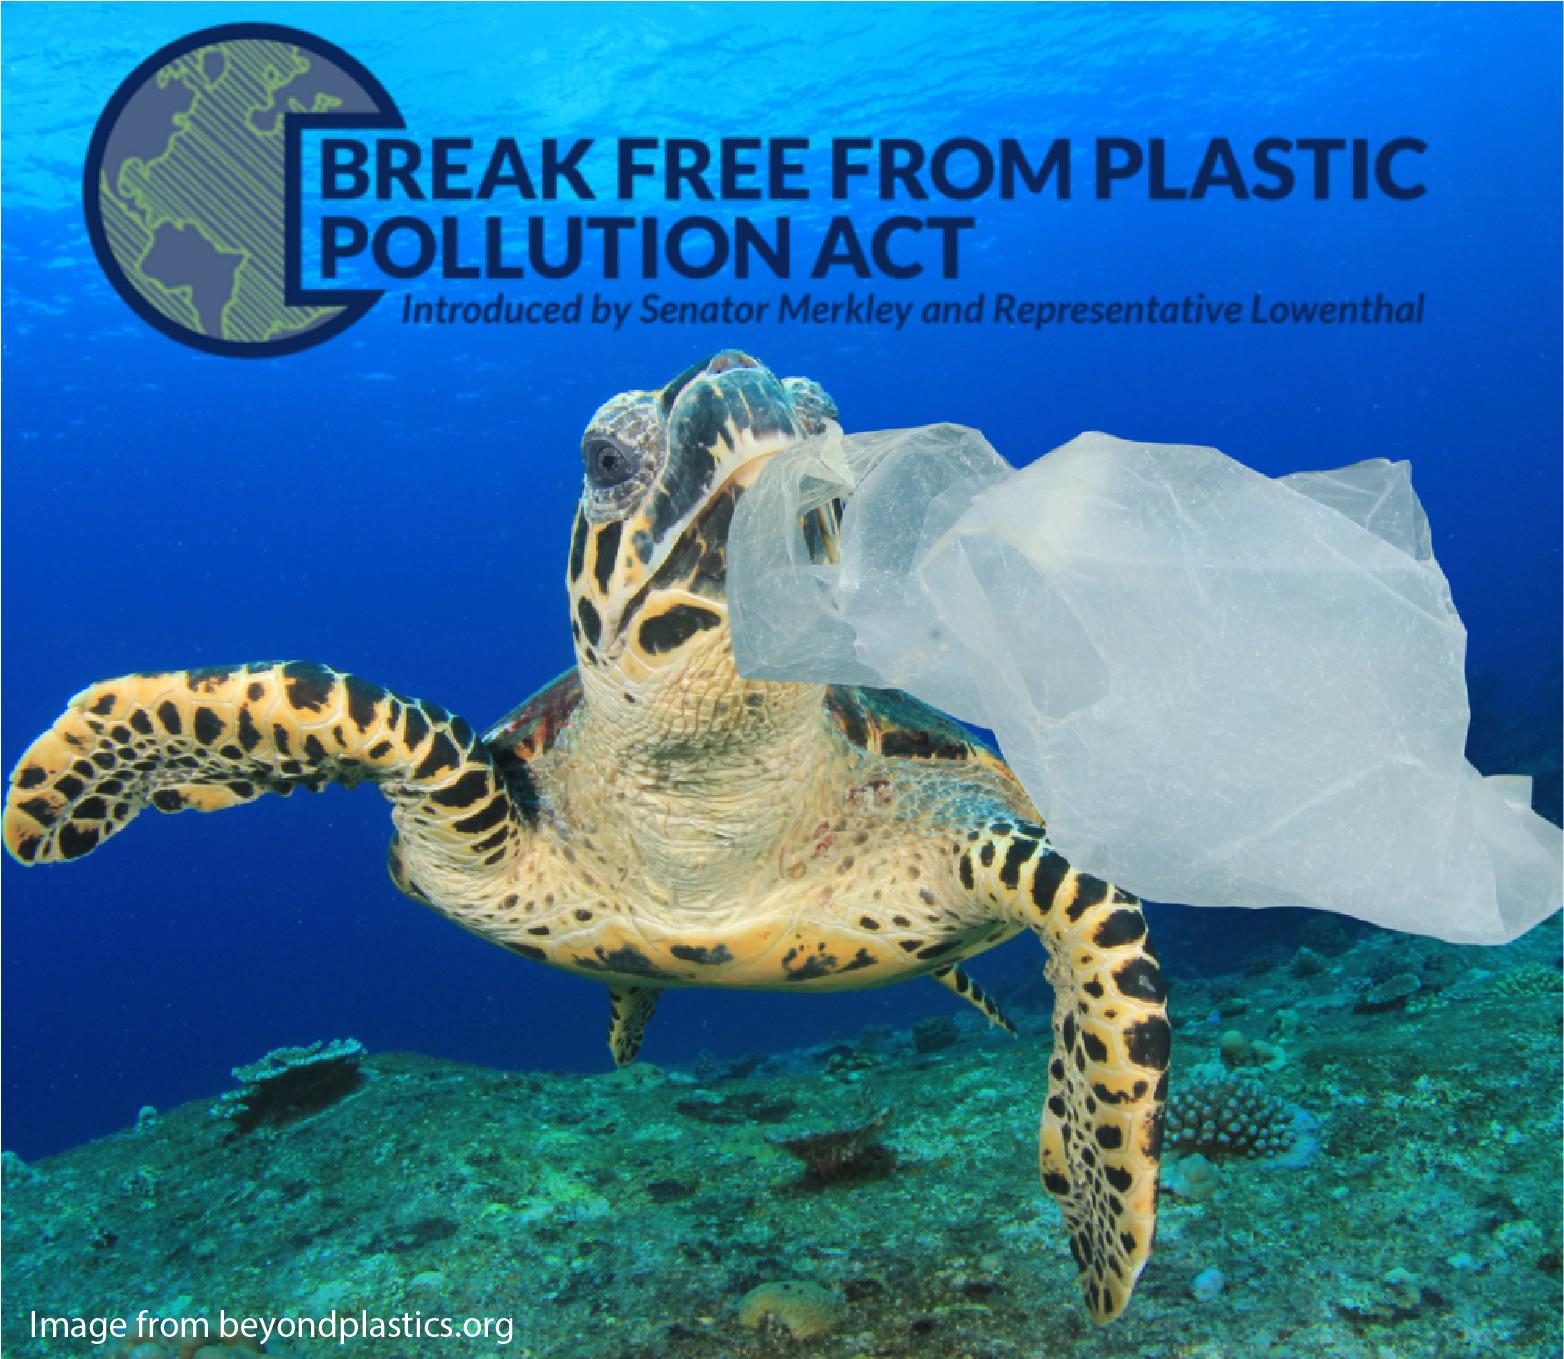 Help Support the Break Free From Plastic Pollution Act of 2021